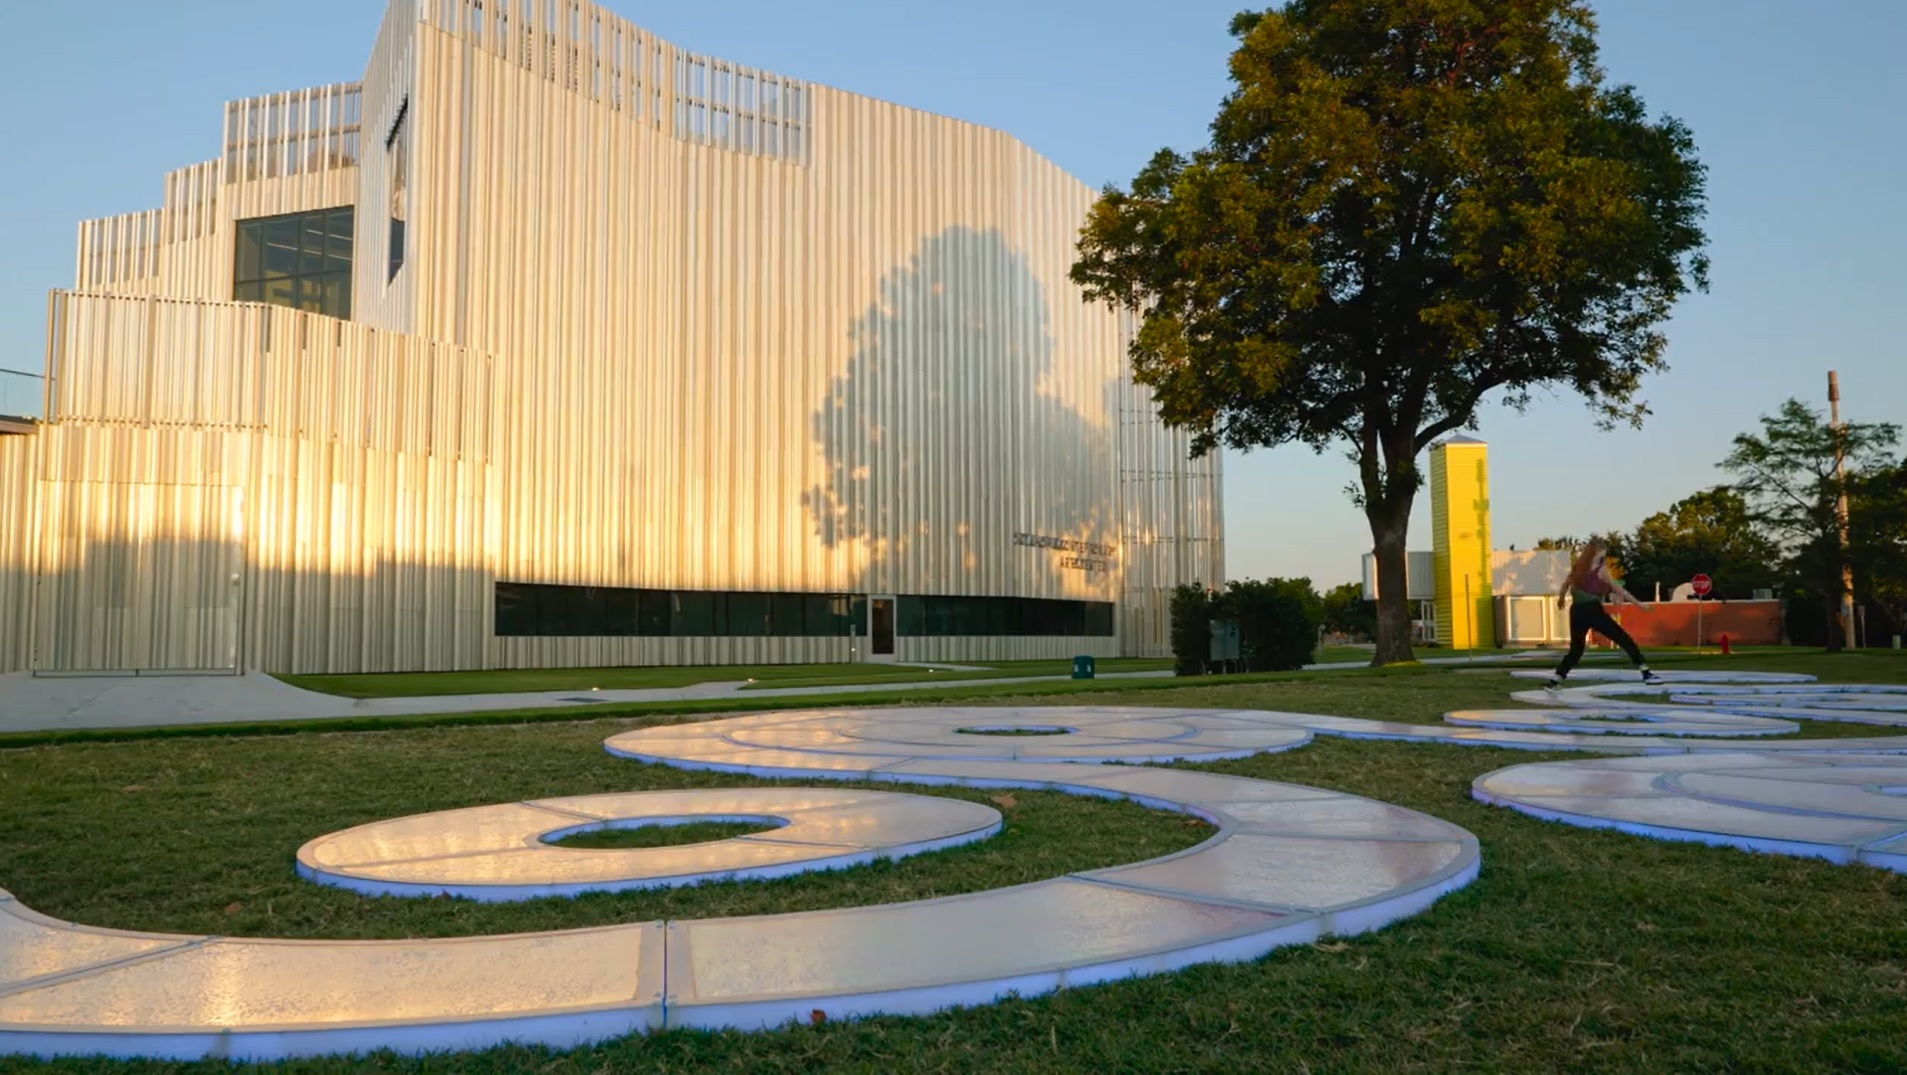 A daytime photo depicts the reflective surface of a winding sculptural path in front of a contemporary building